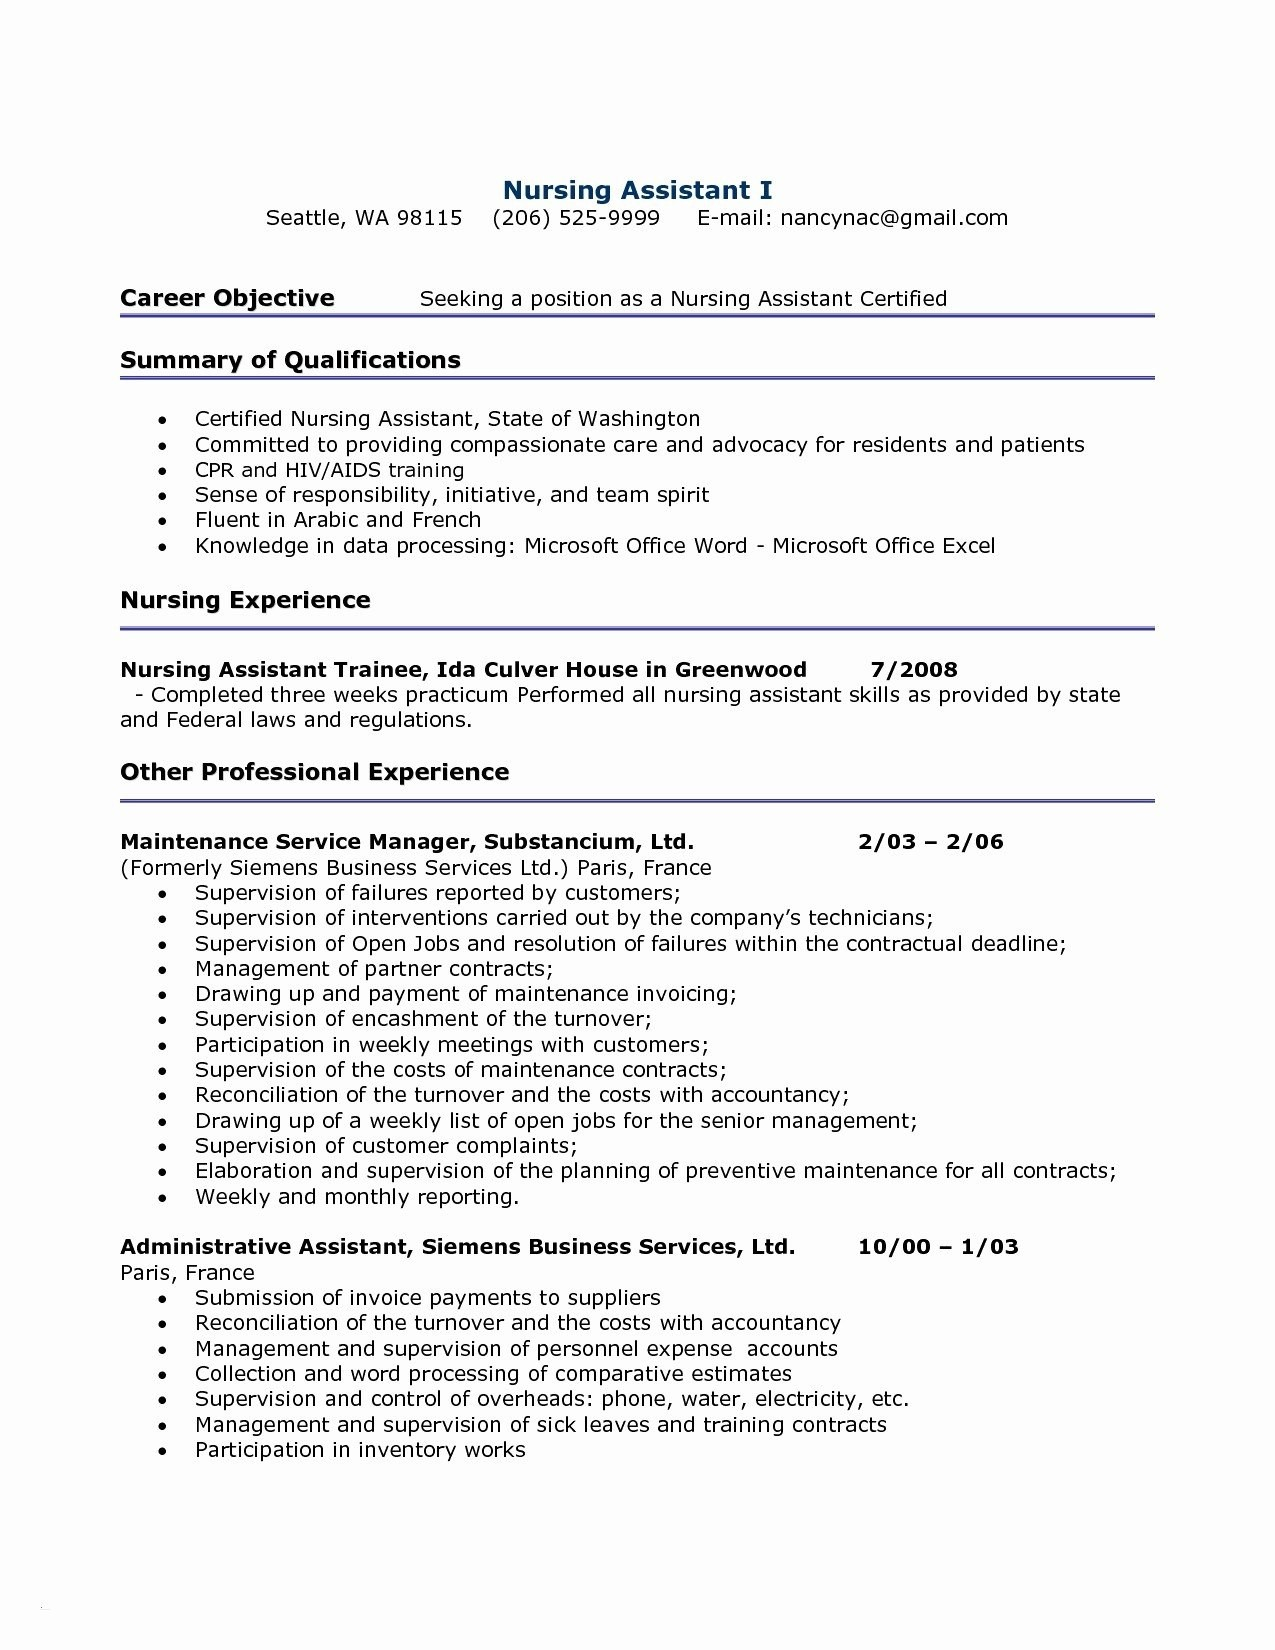 Nursing Student Resume with No Experience - Resume for No Work Experience Inspirational Experience Job